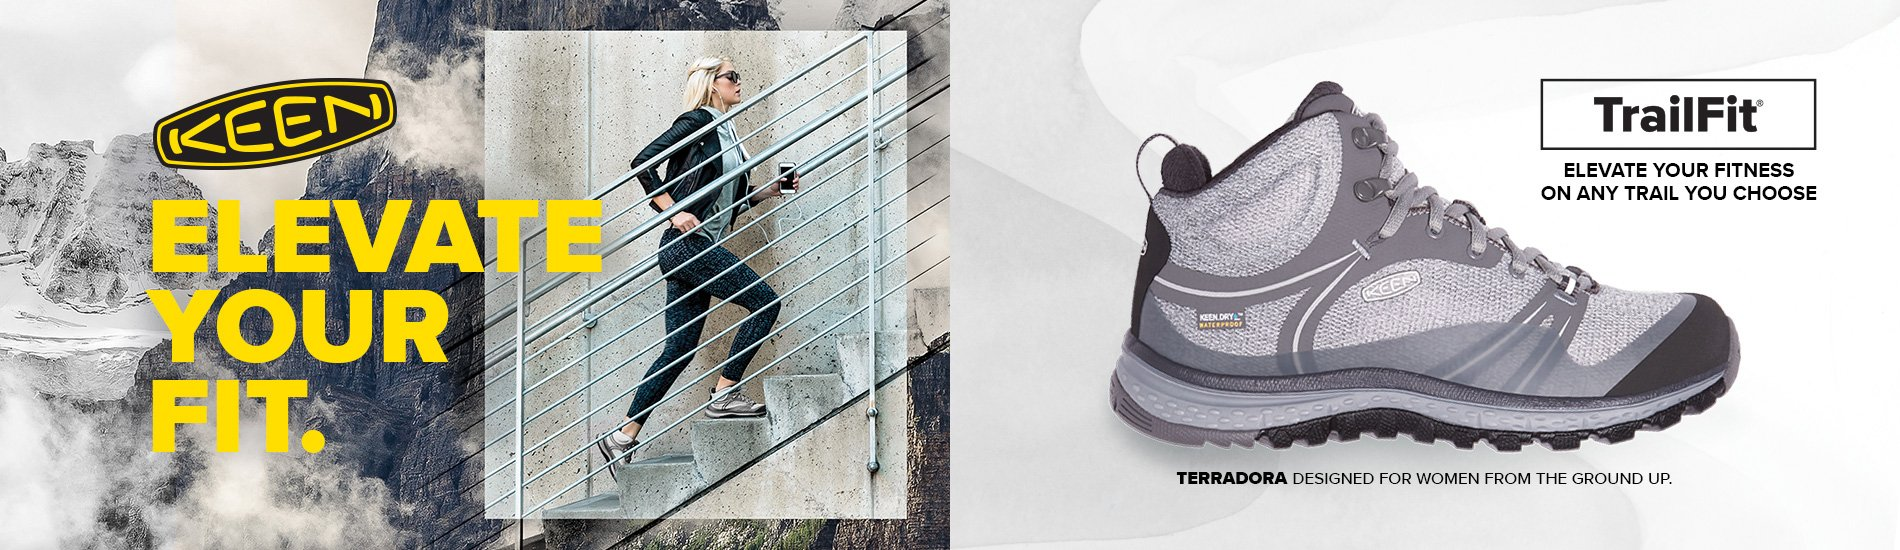 CoOp-Keen-2-19-17 Keen. Elevate your fit. Shop Terradora.